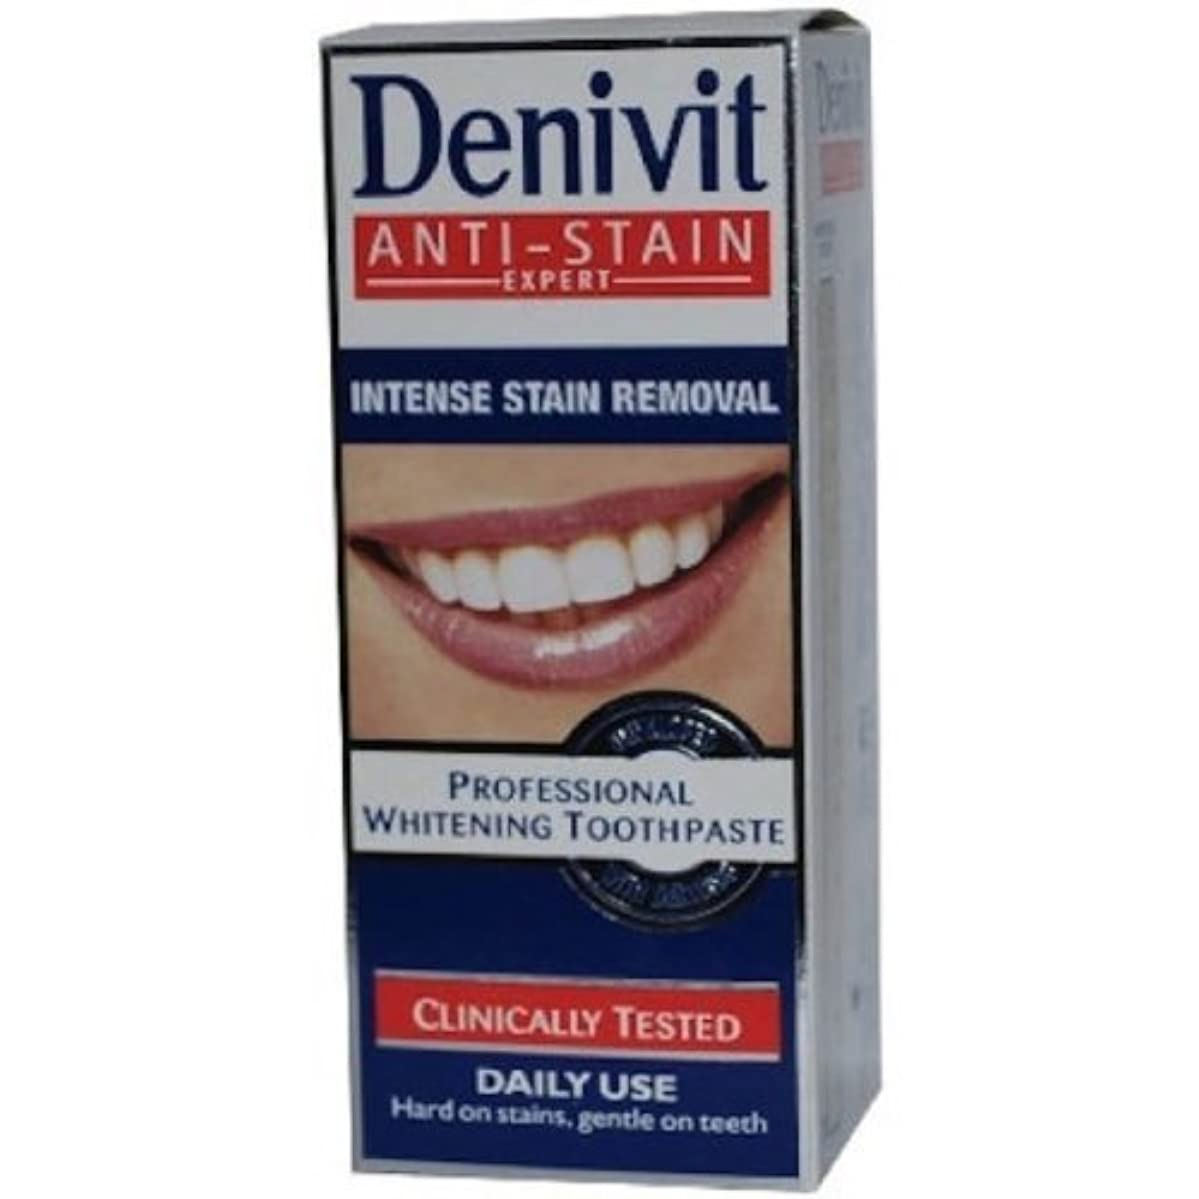 Denivit Professional Whitening Toothpaste - 50Ml - Pack Of 2 by Denivit